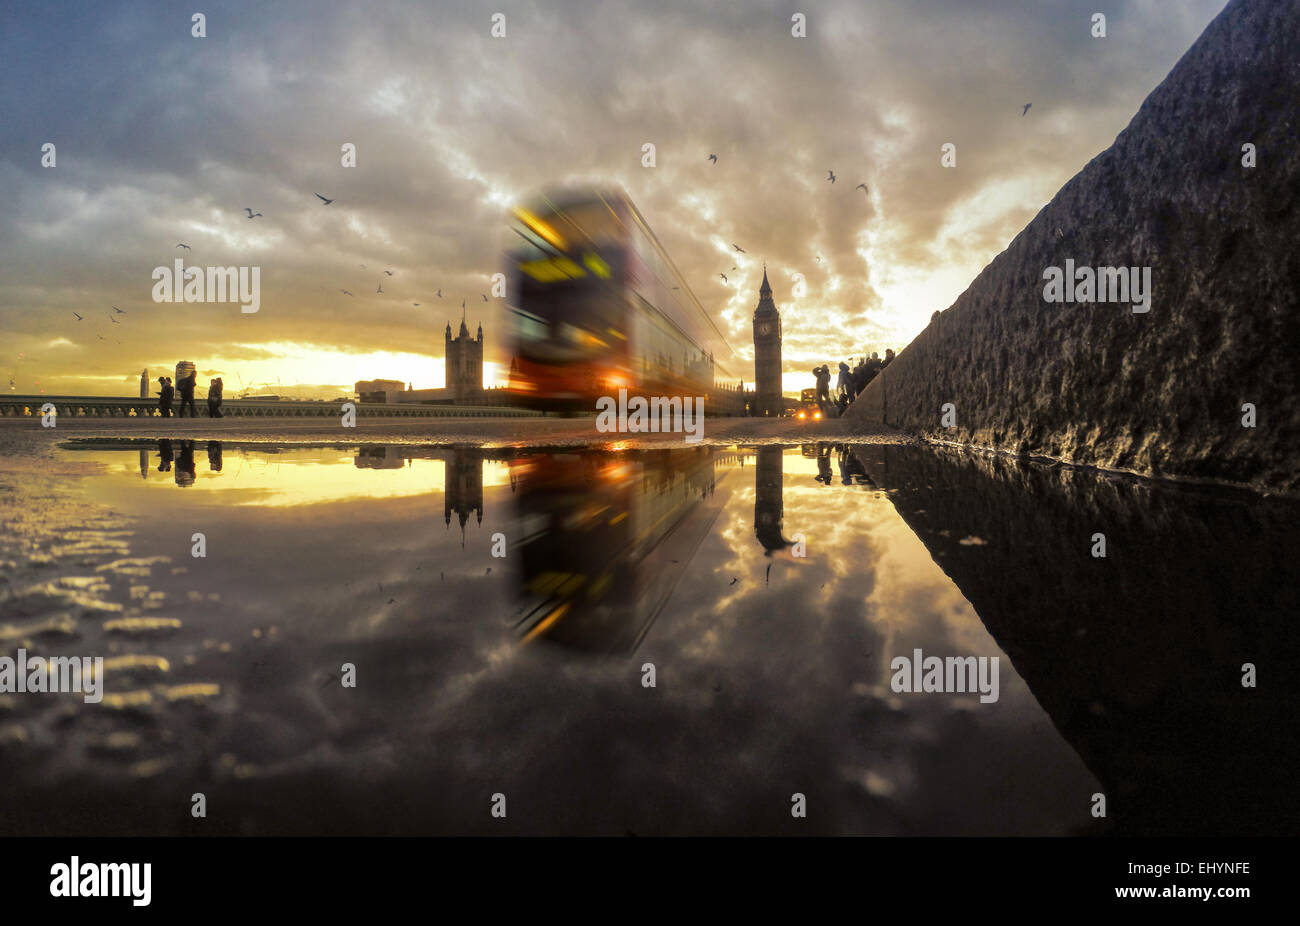 Westminster Bridge at sunset, England, UK - Stock Image